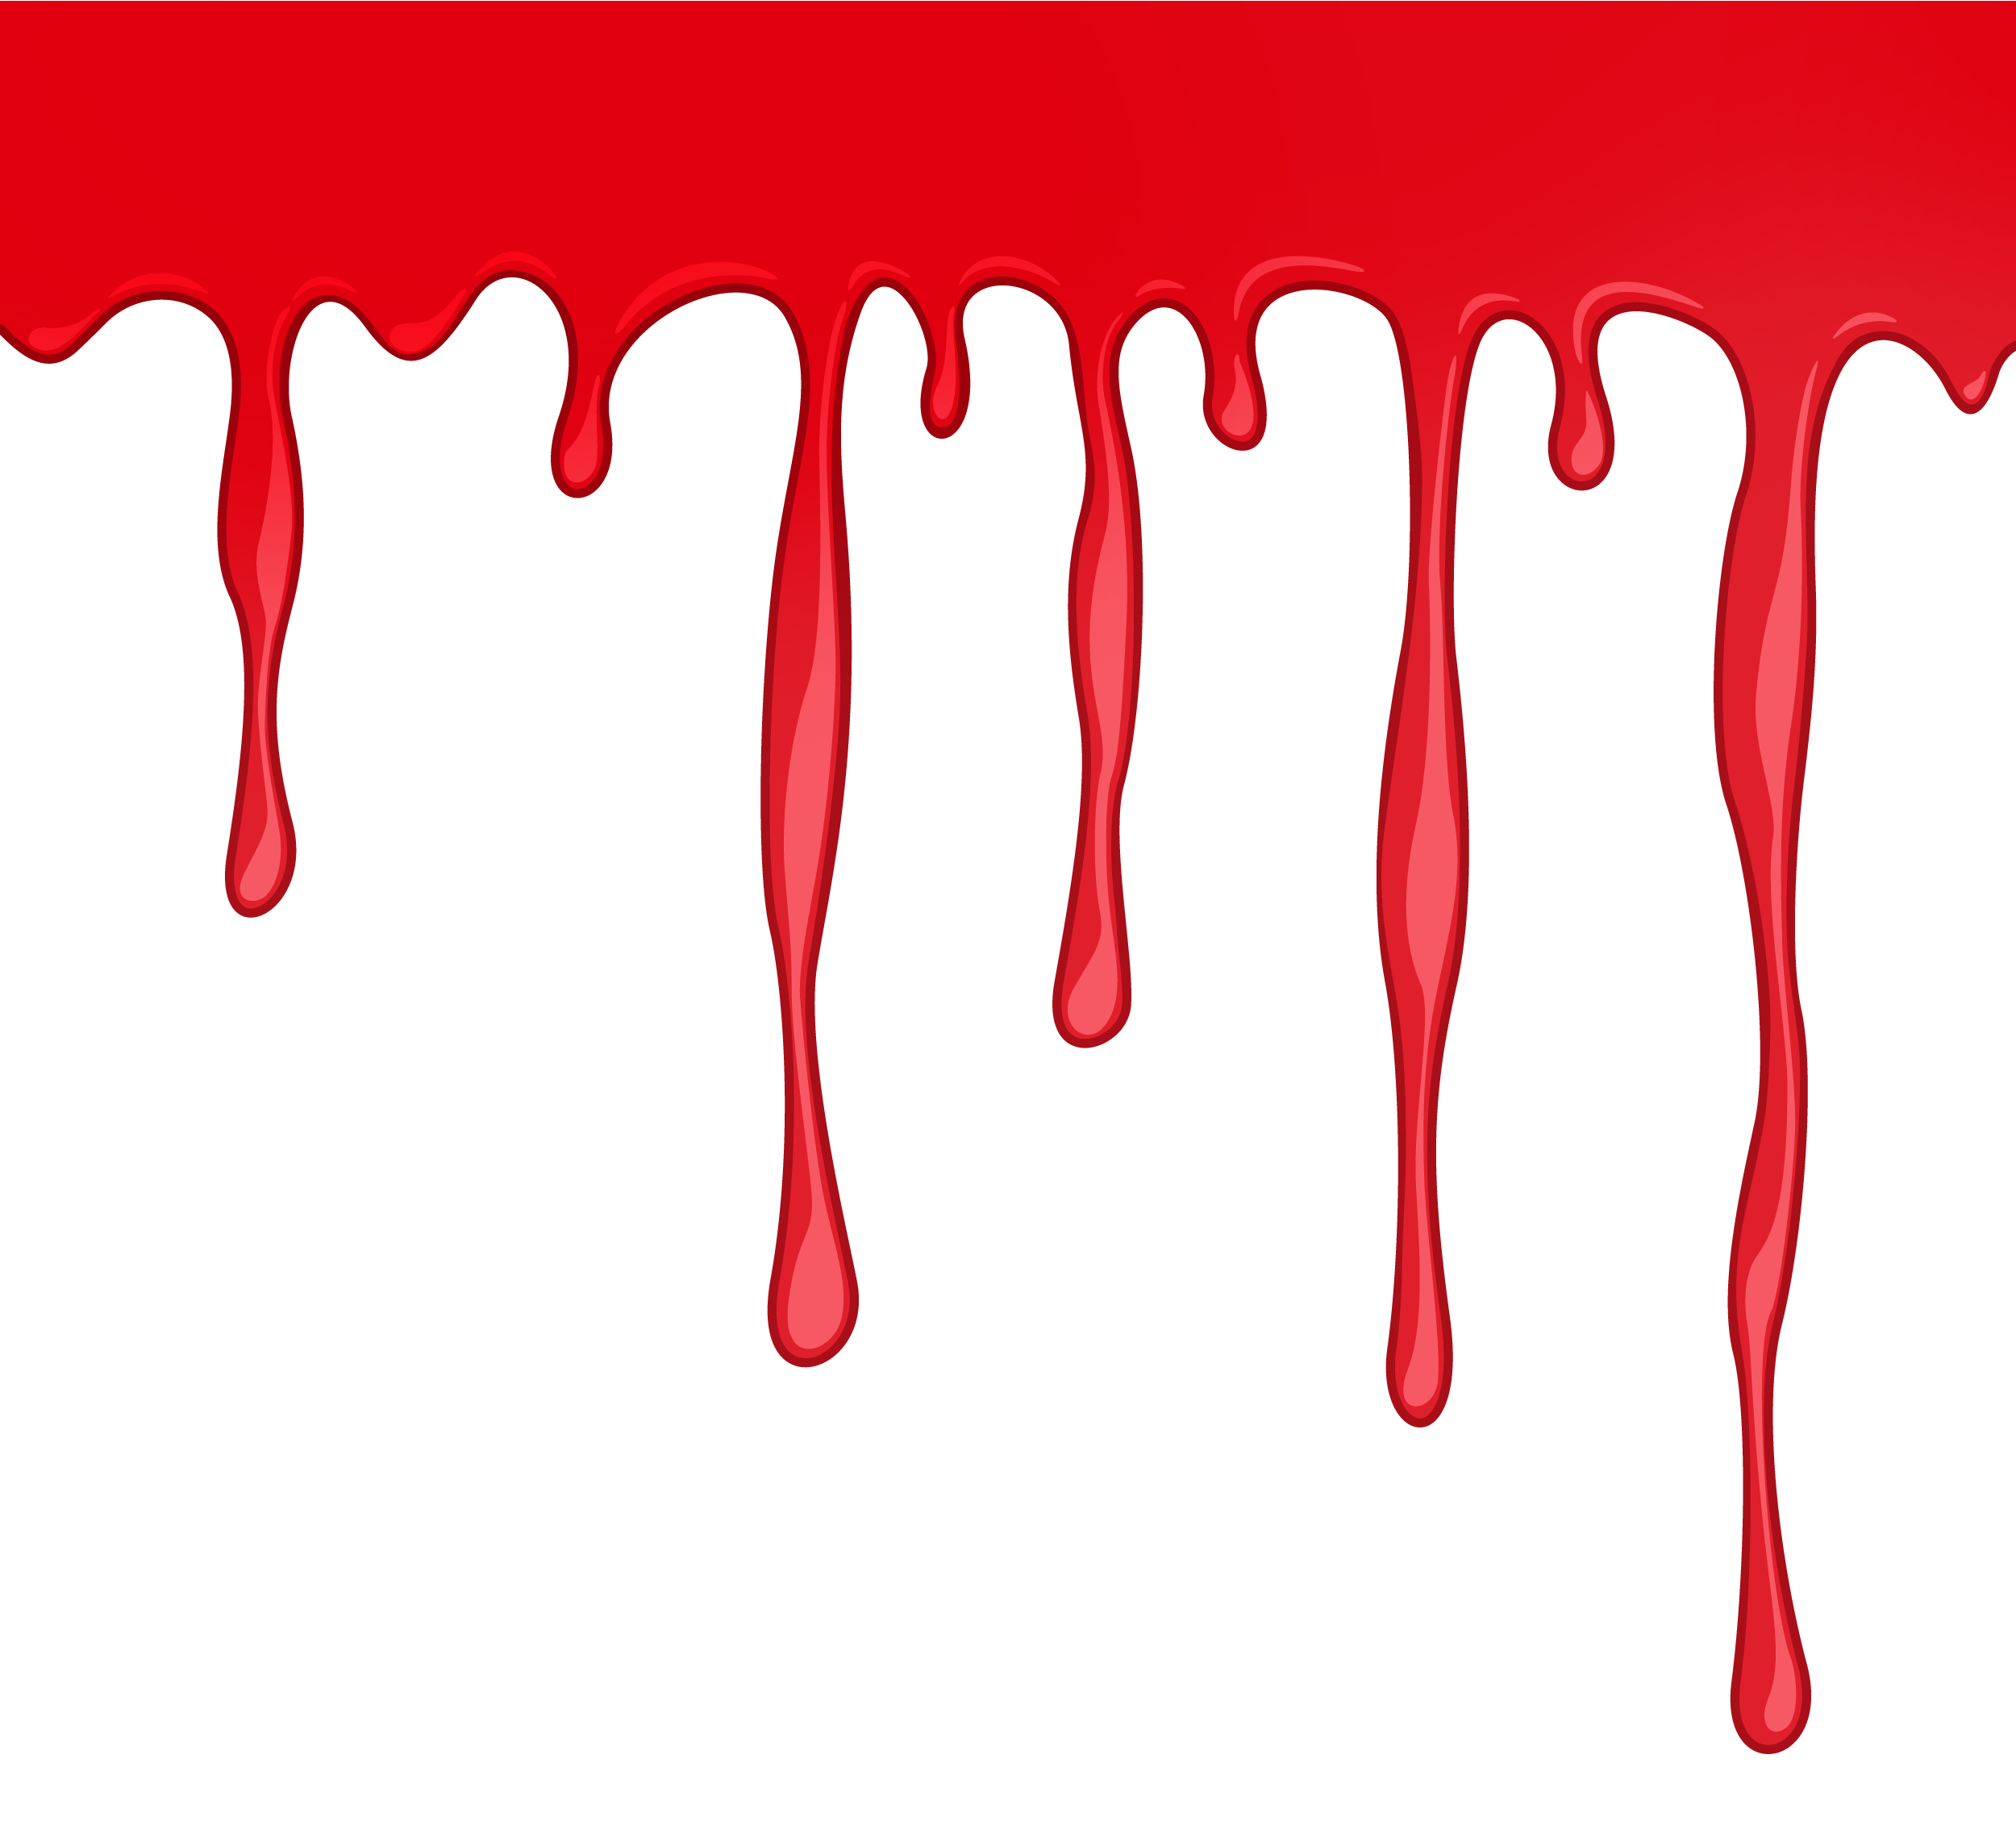 Blood drip png. Free download icons and